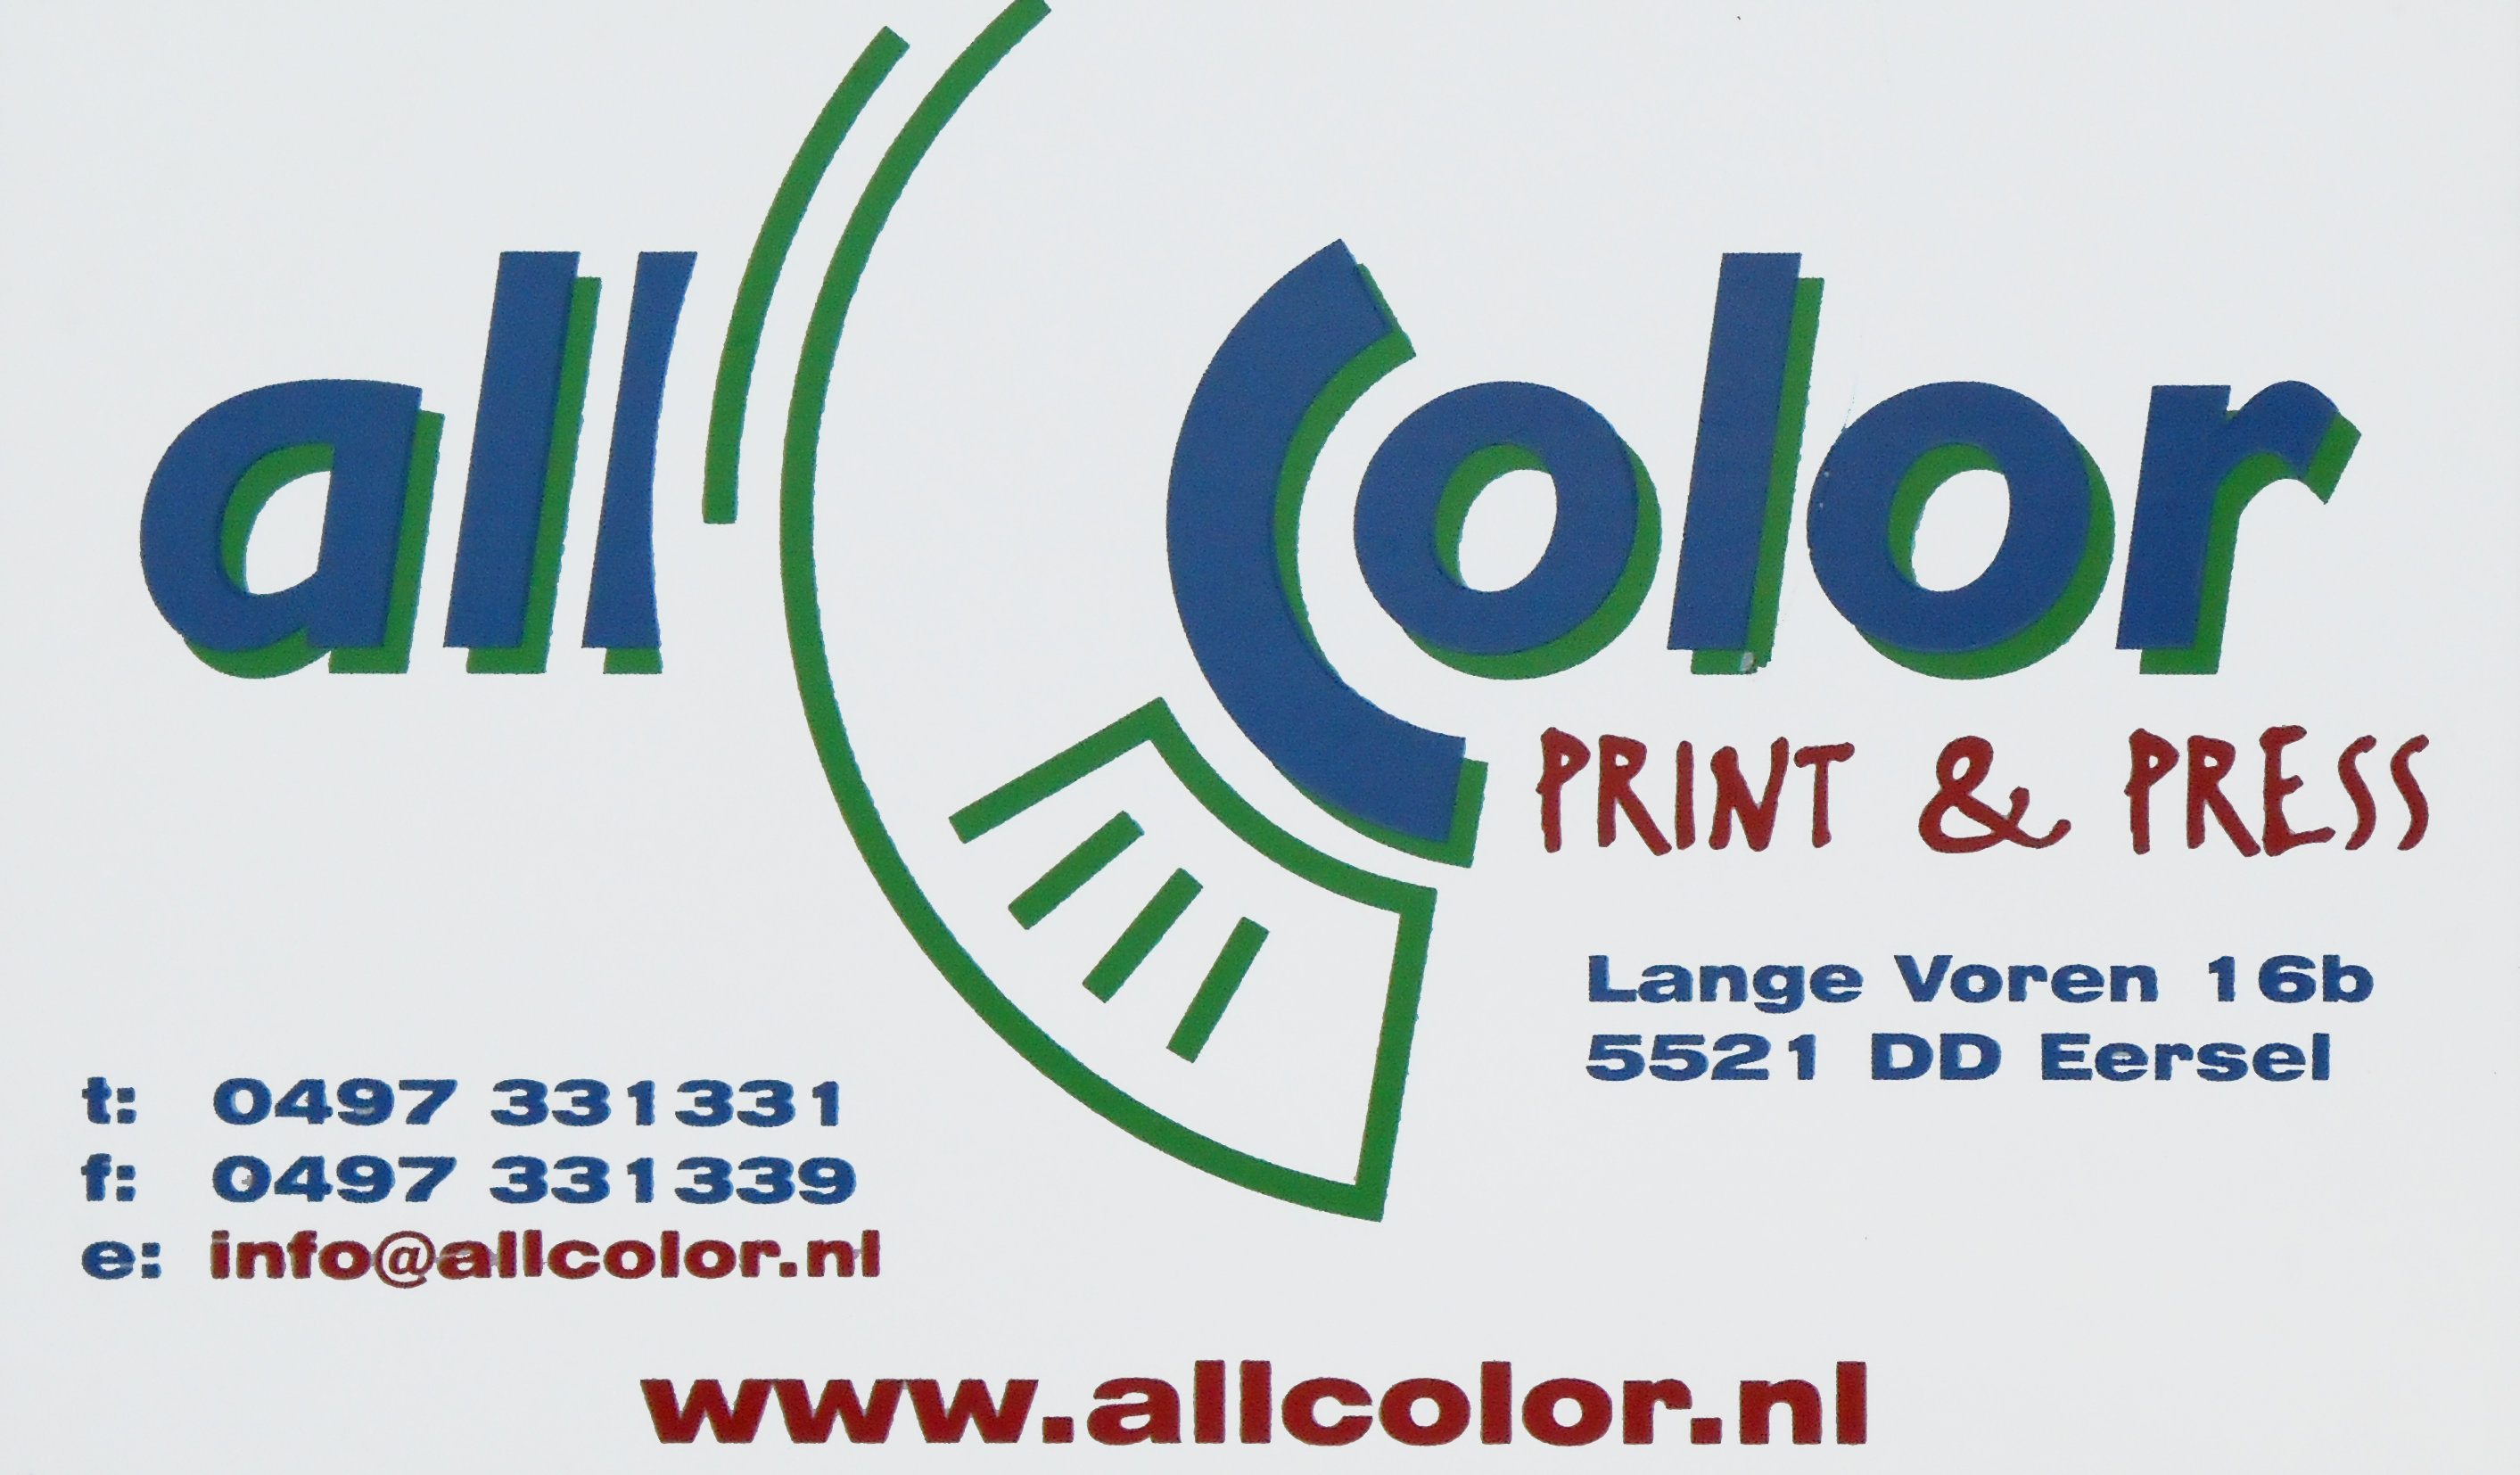 all-color-print-press